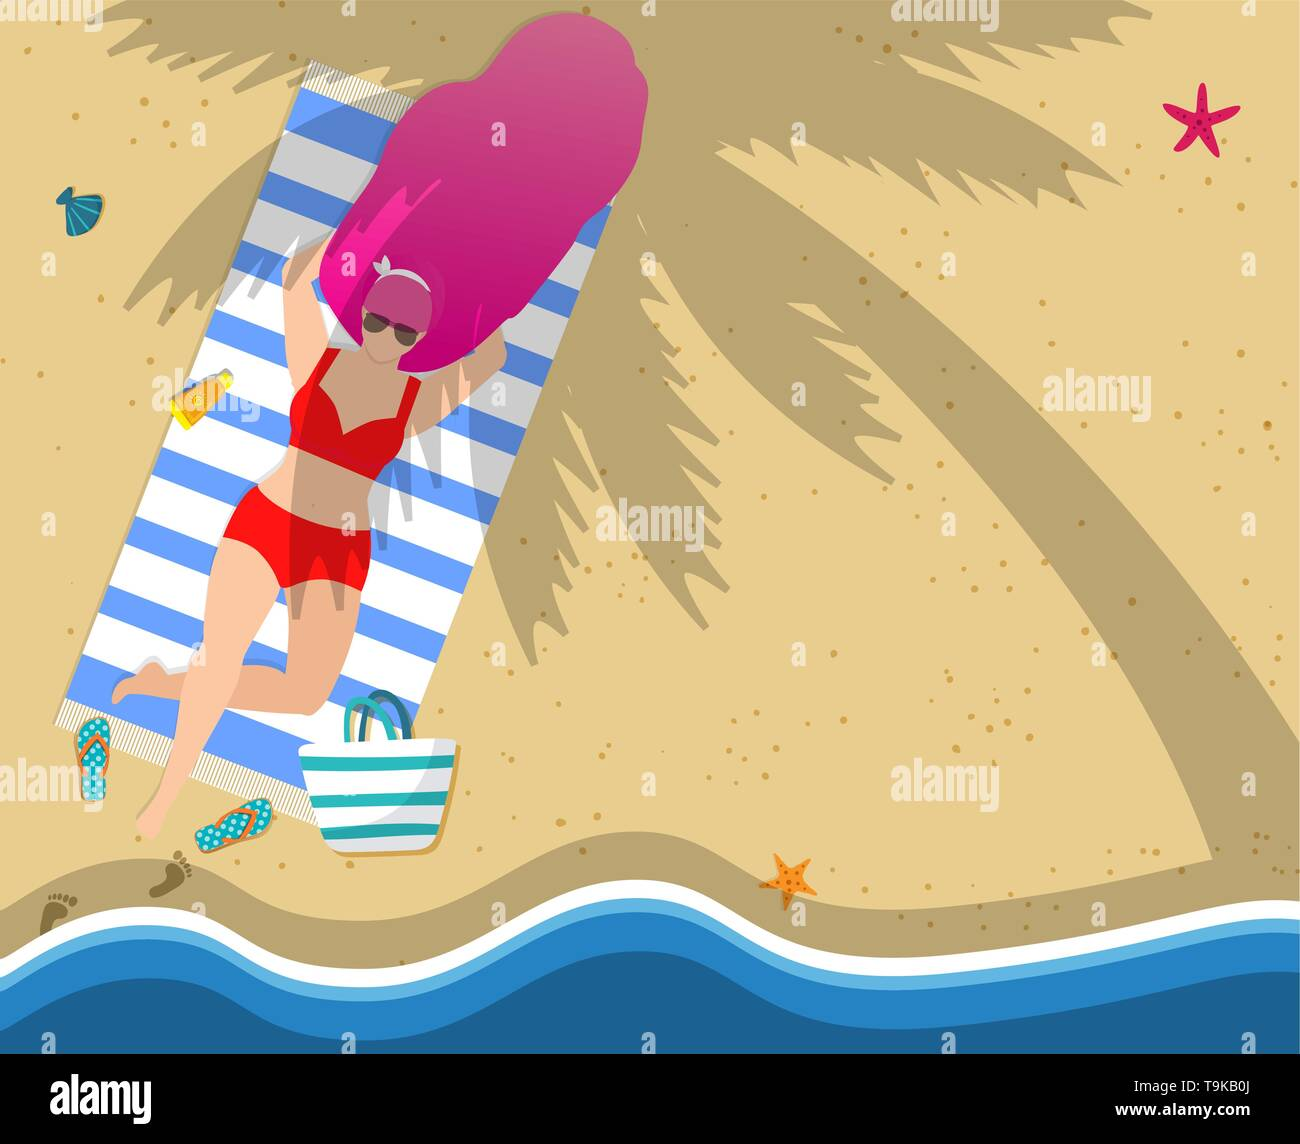 Woman Relaxing on Beach. Girl in Red Swimwear Lying on Towel at Seaside under Palm Tree. Hello Summer Typography, Leisure, Tanning, Sparetime Relaxati - Stock Vector